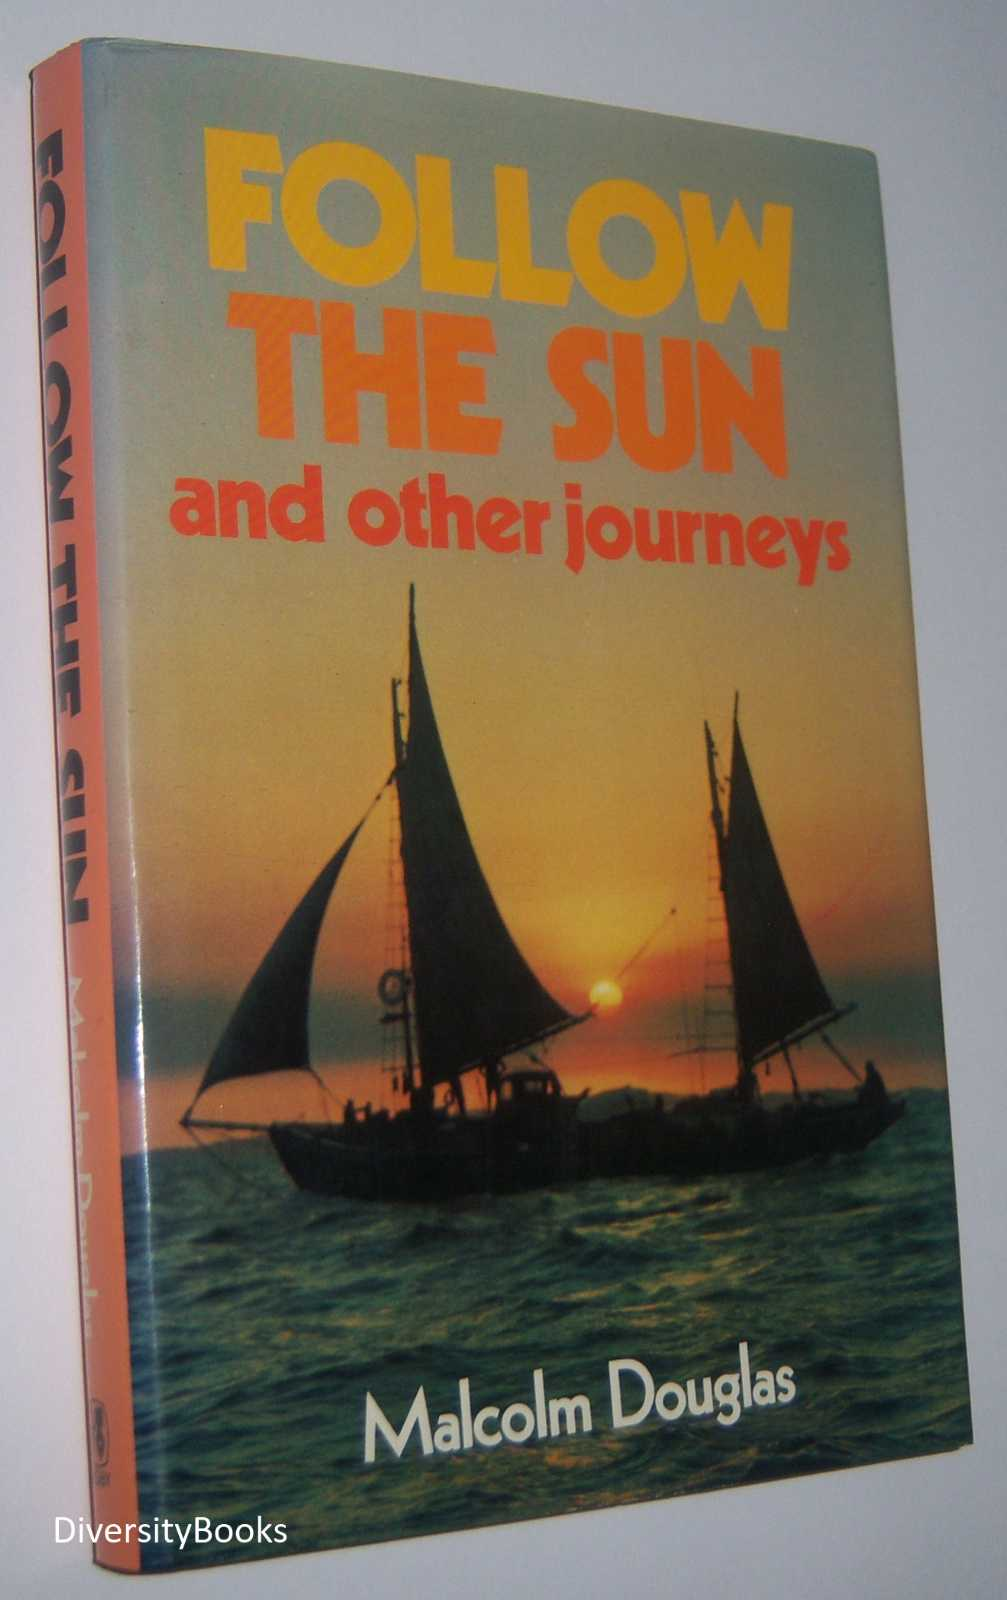 Image for FOLLOW THE SUN and Other Journeys